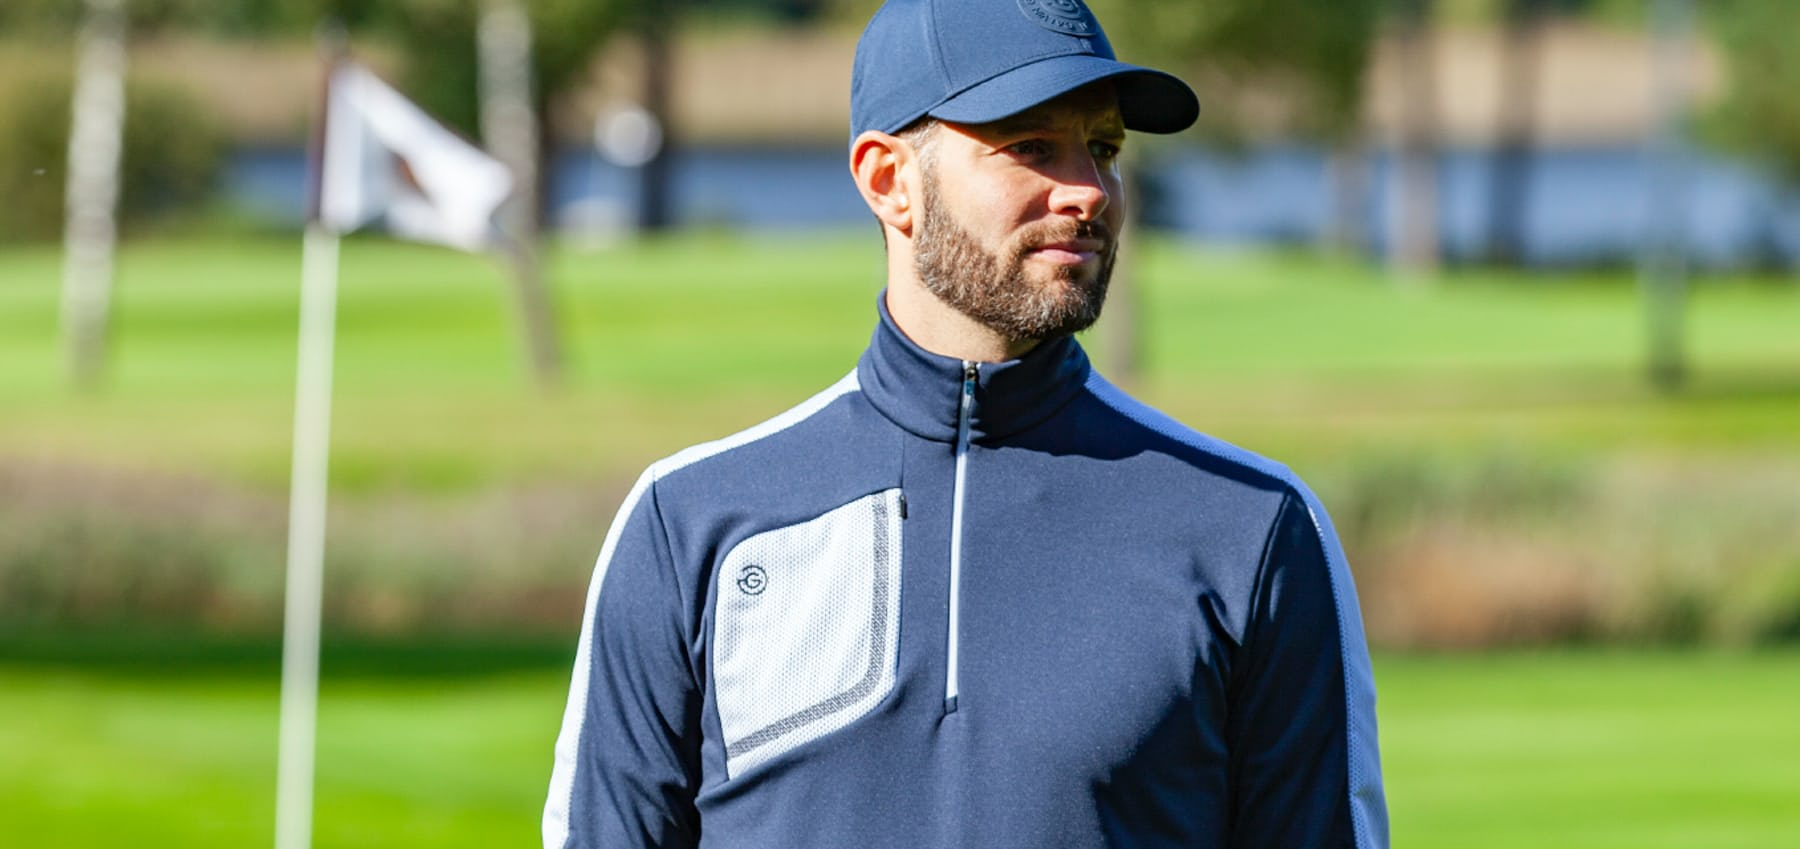 Gear Up For Game Day | Galvin Green